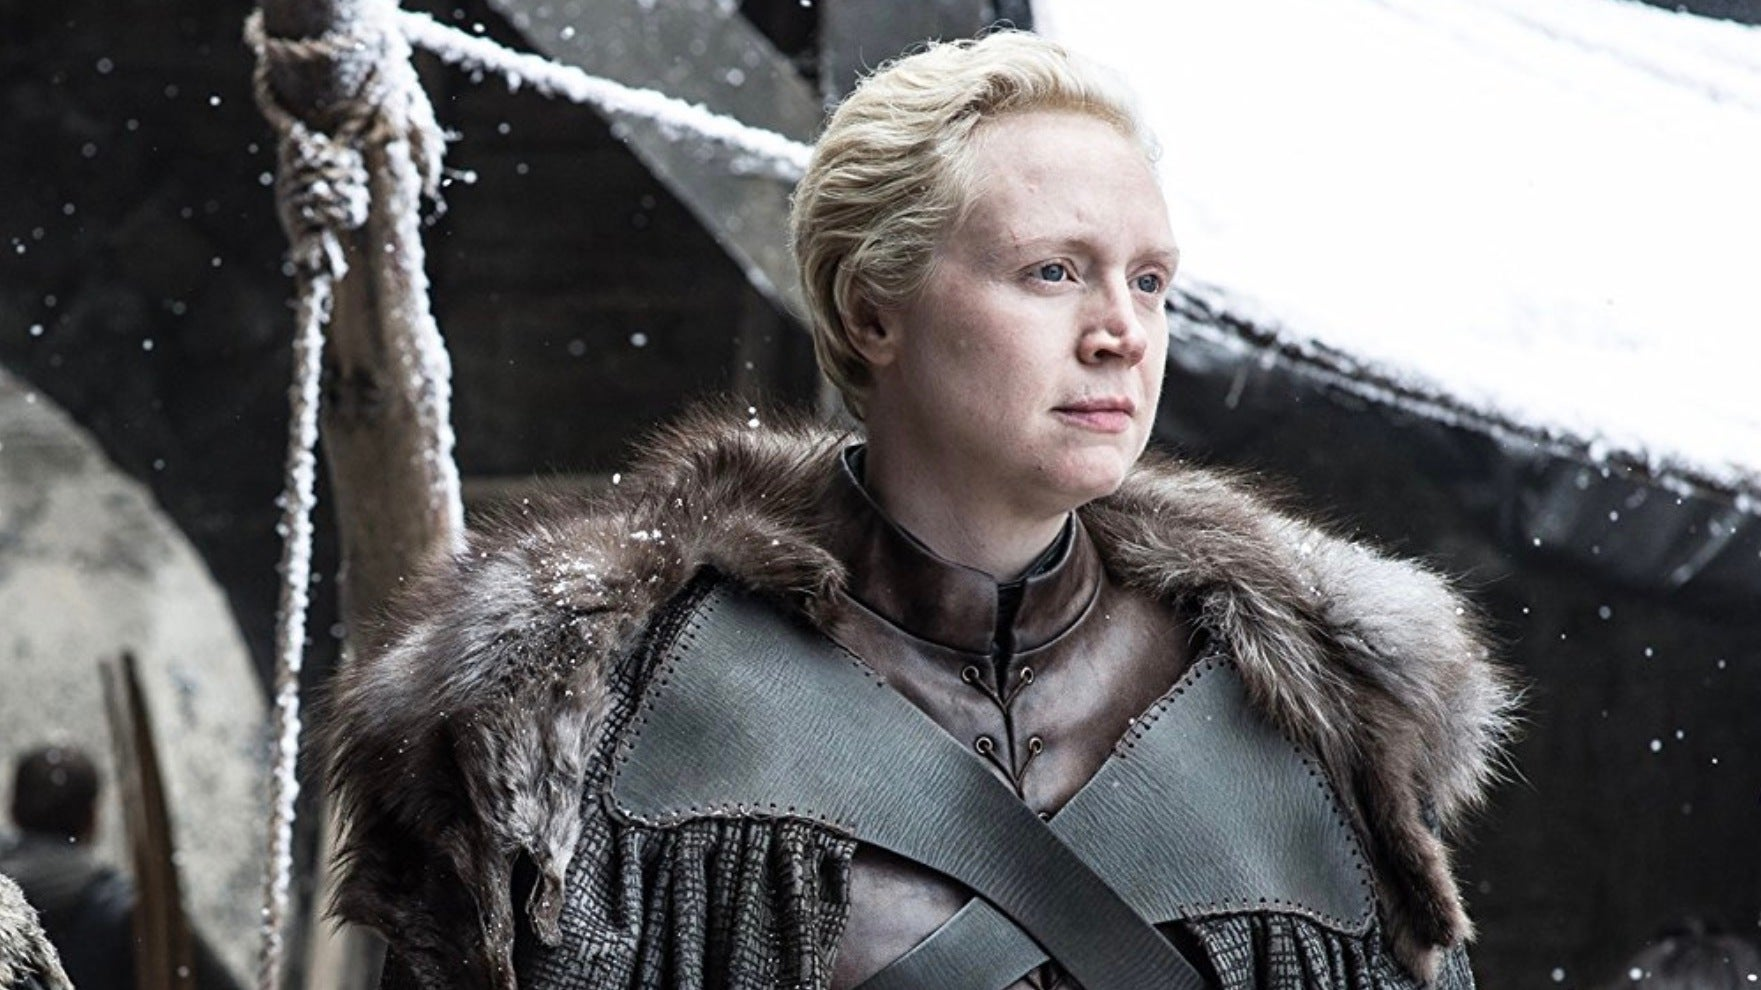 game-of-thrones gwendoline-christie hbo io9